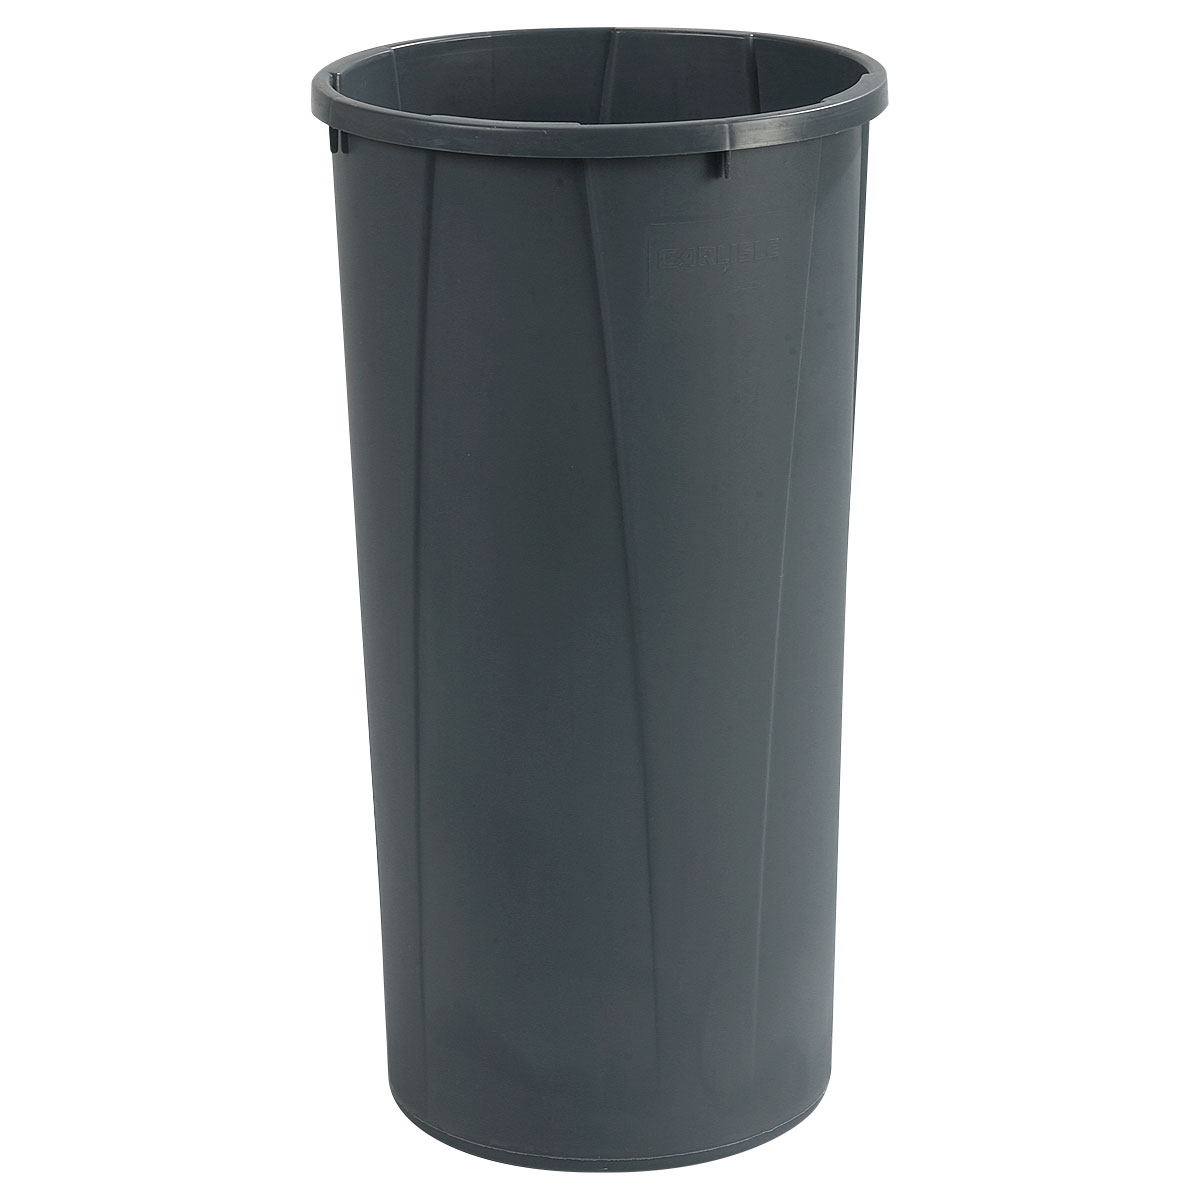 Carlisle 34312223 22-gallon Commercial Trash Can - Plastic, Round, Built-in Handles